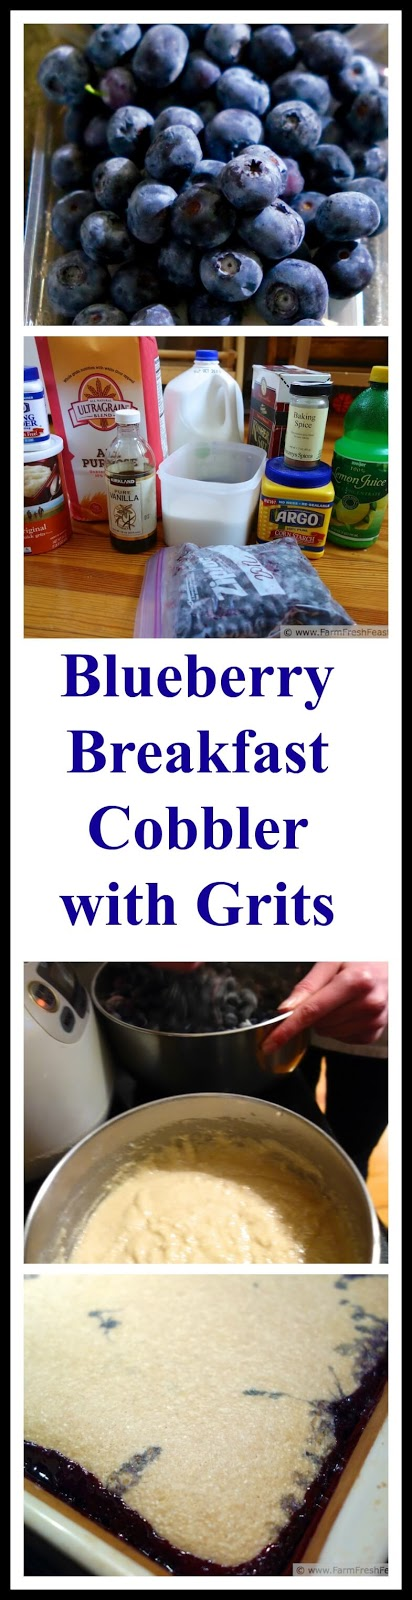 http://www.farmfreshfeasts.com/2015/08/blueberry-breakfast-cobbler-with-grits.html